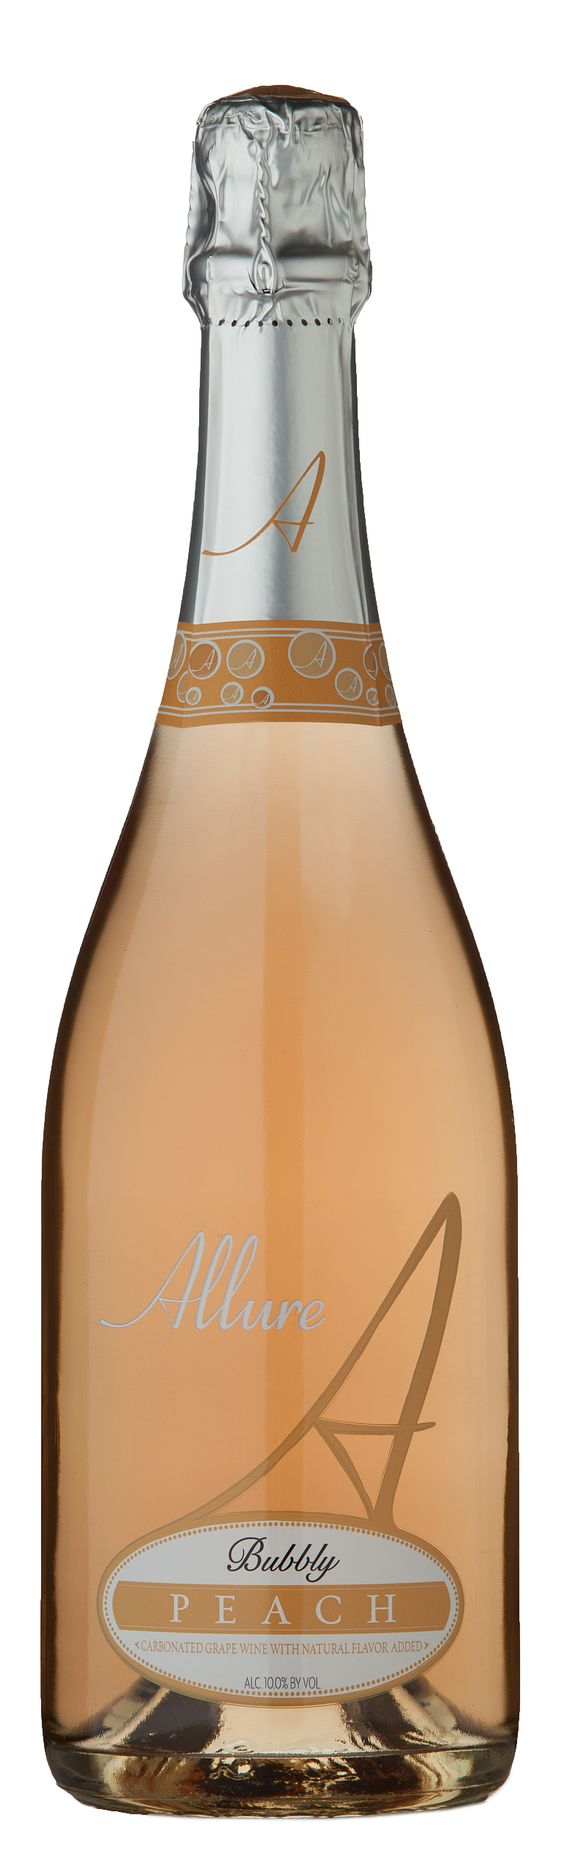 grapestobottles.com posting: The scrumptious flavor of a peach bursting with ripeness combined with the floral and fruity essences of our Symphony wine  is summer captured in a glass. The palate is further roused by a frenzy of lively bubbles and enticing sweetness